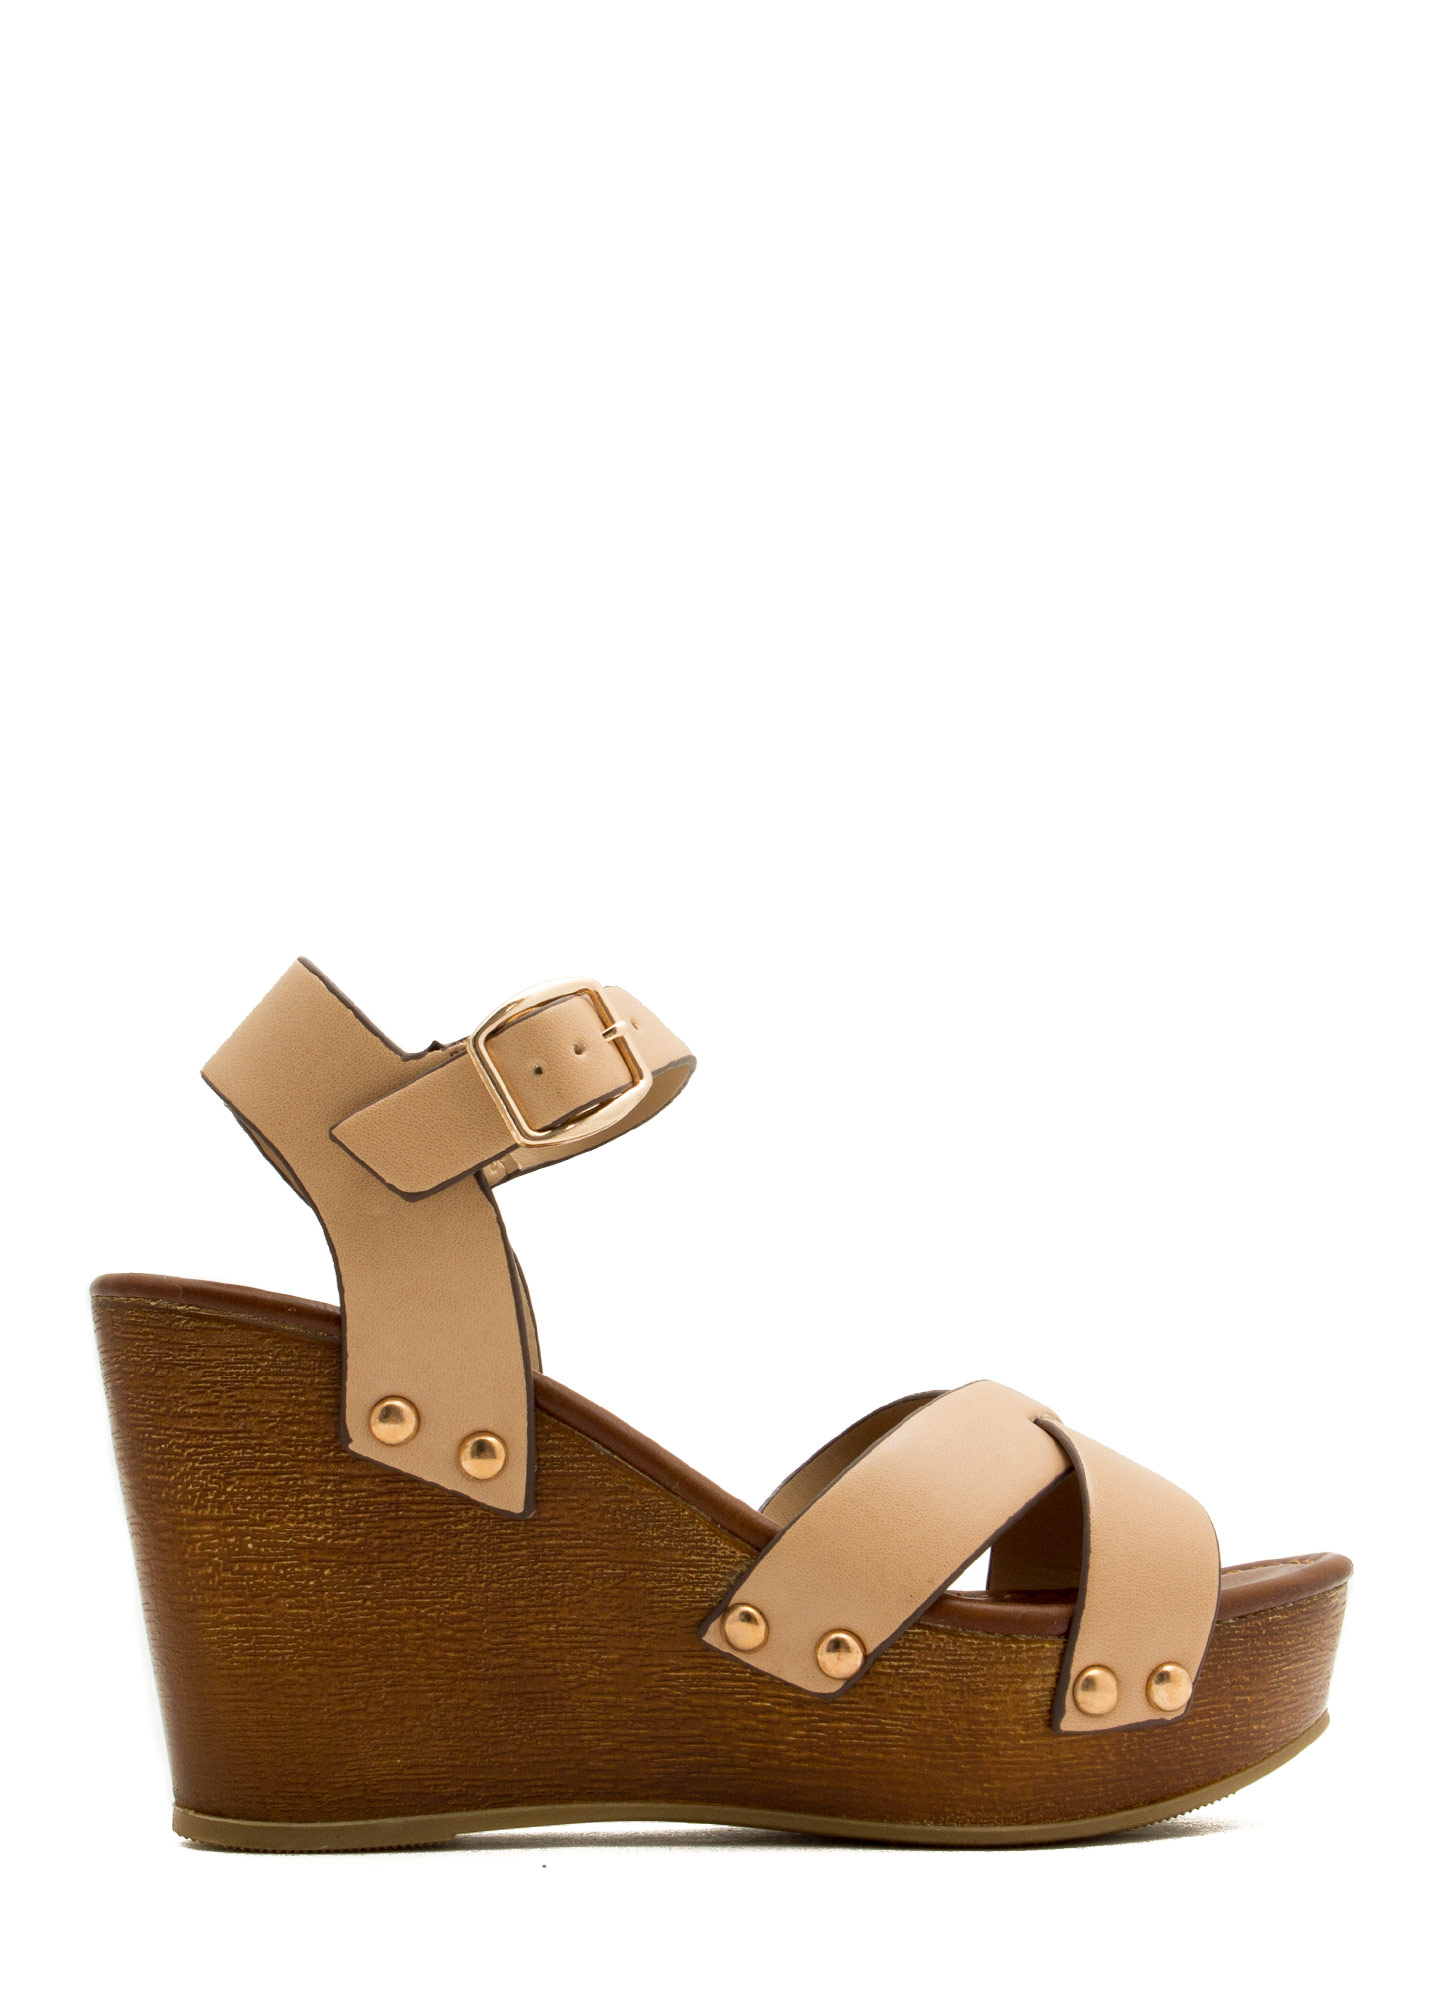 Cross The Line Platform Wedges NATURAL